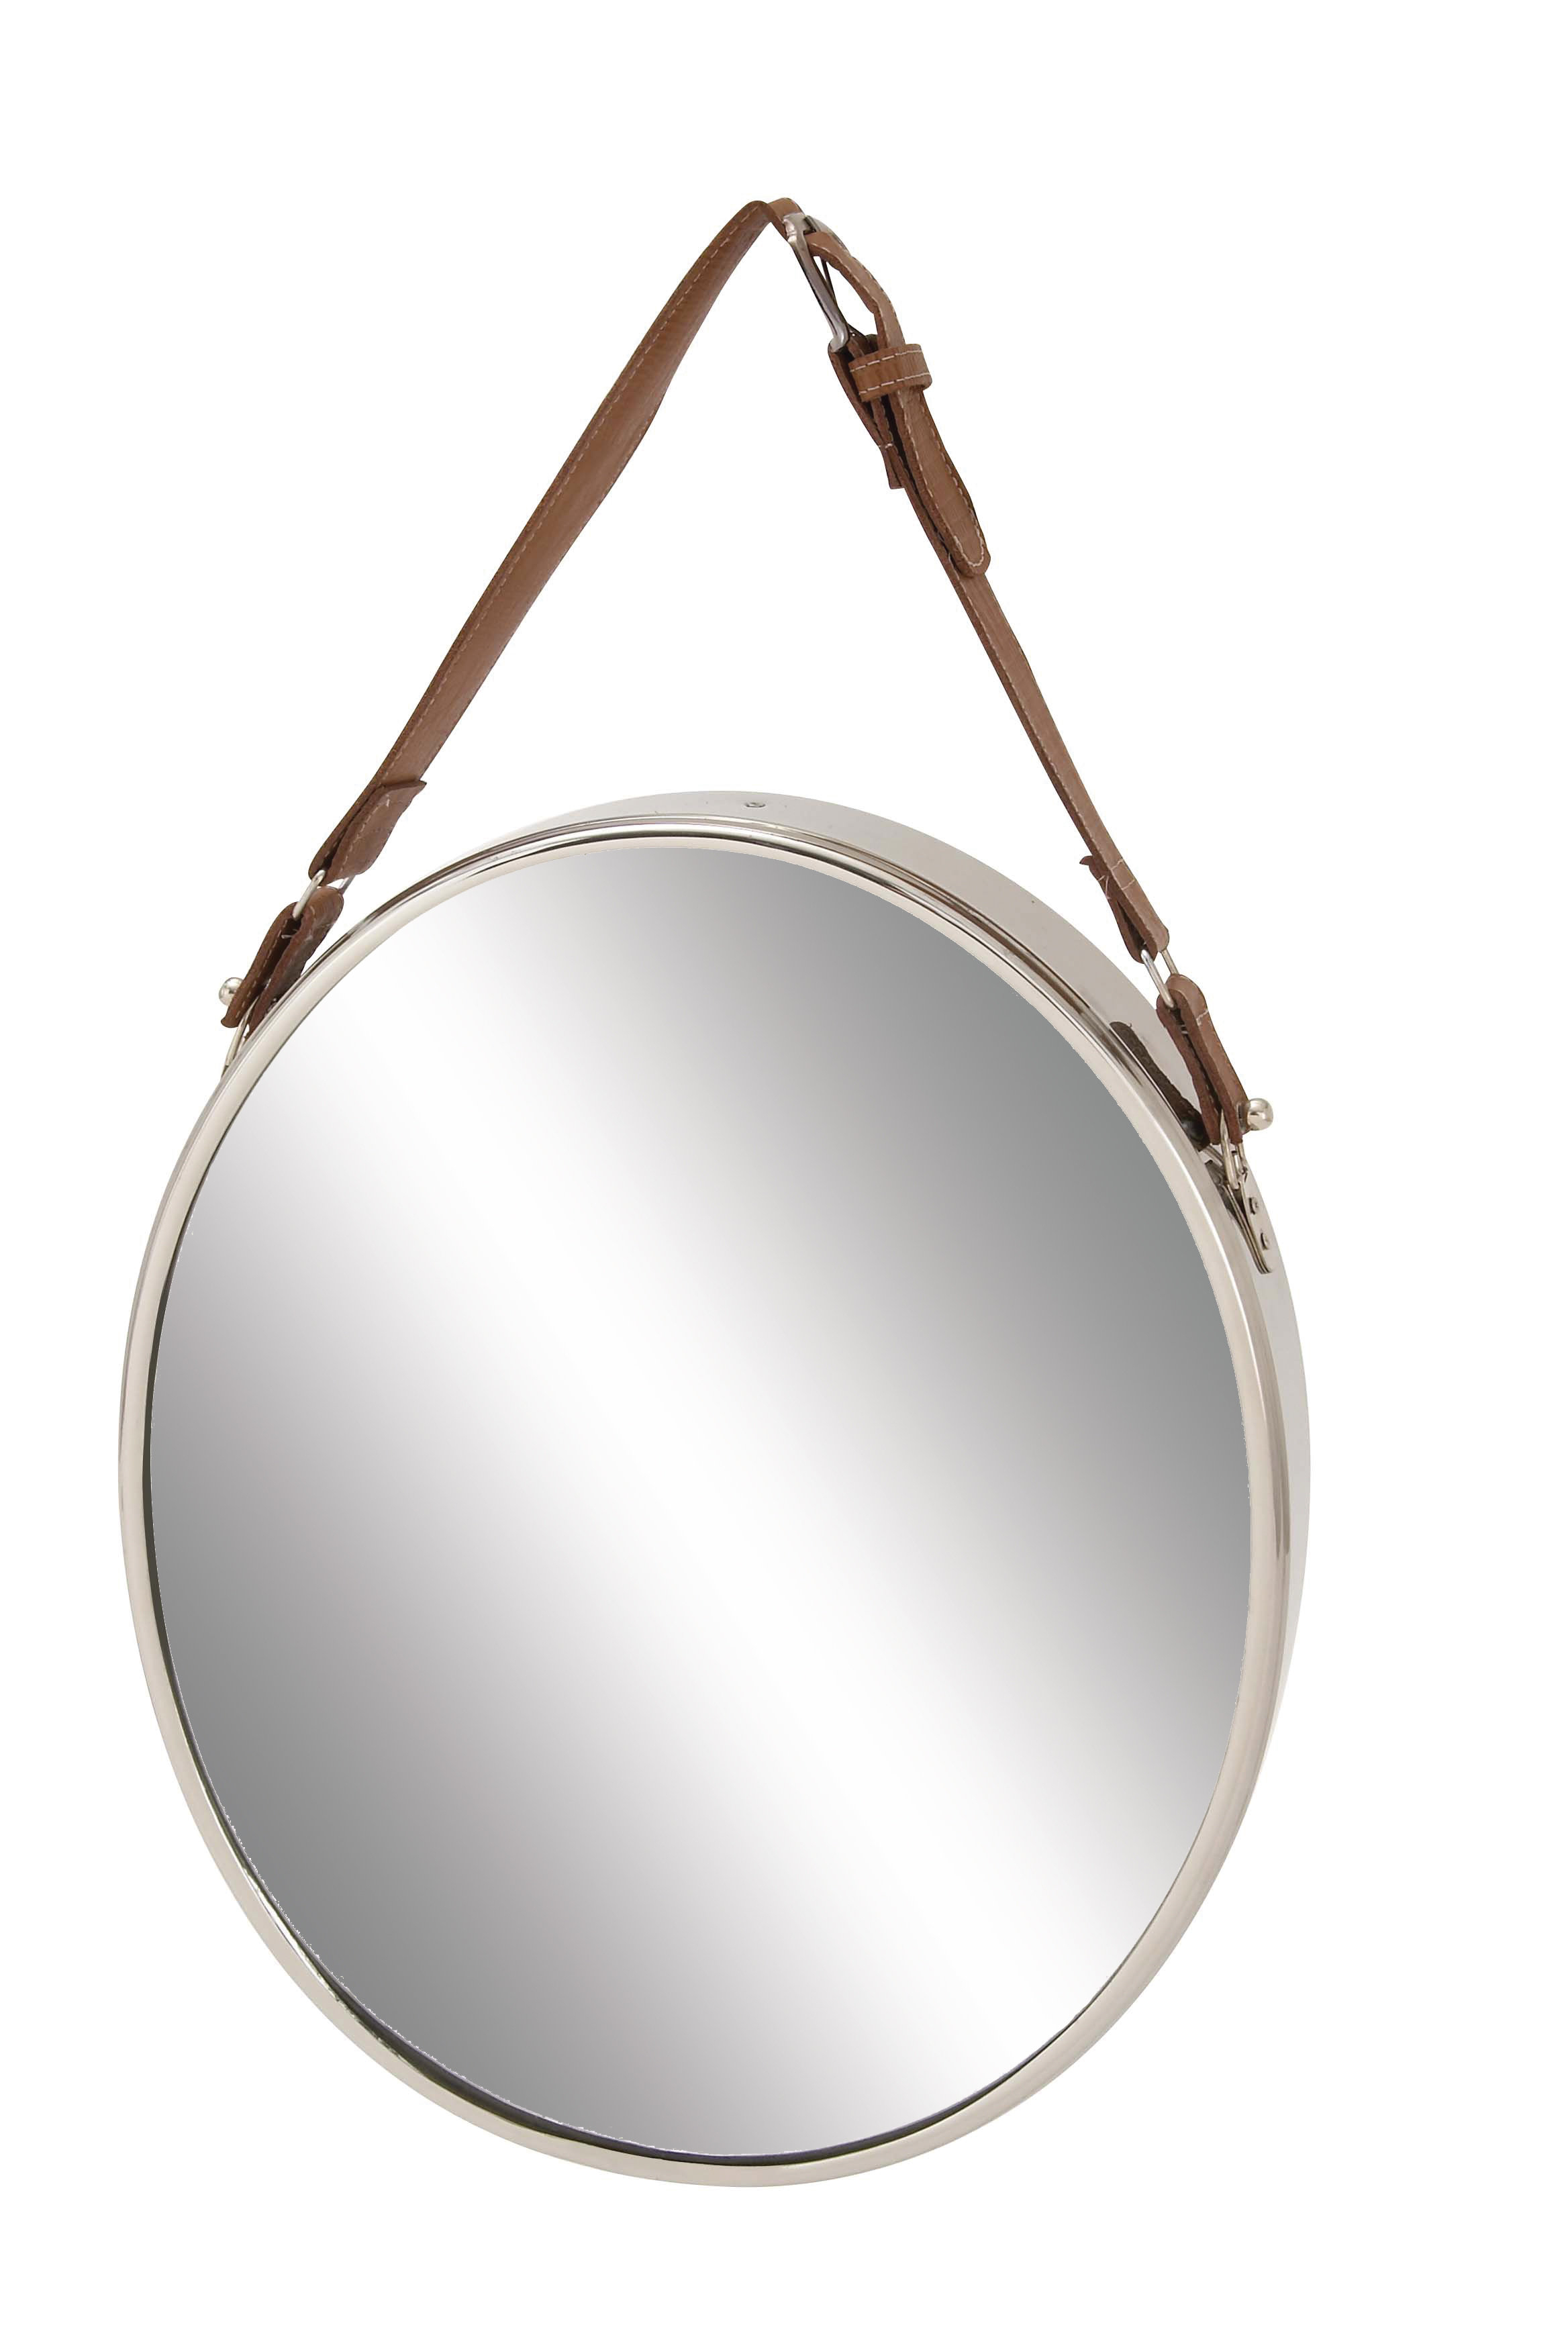 Stainless Steel Wall Mirrors Pertaining To 2020 Sophronia Stainless Steel Leather Wall Mirror (View 15 of 20)